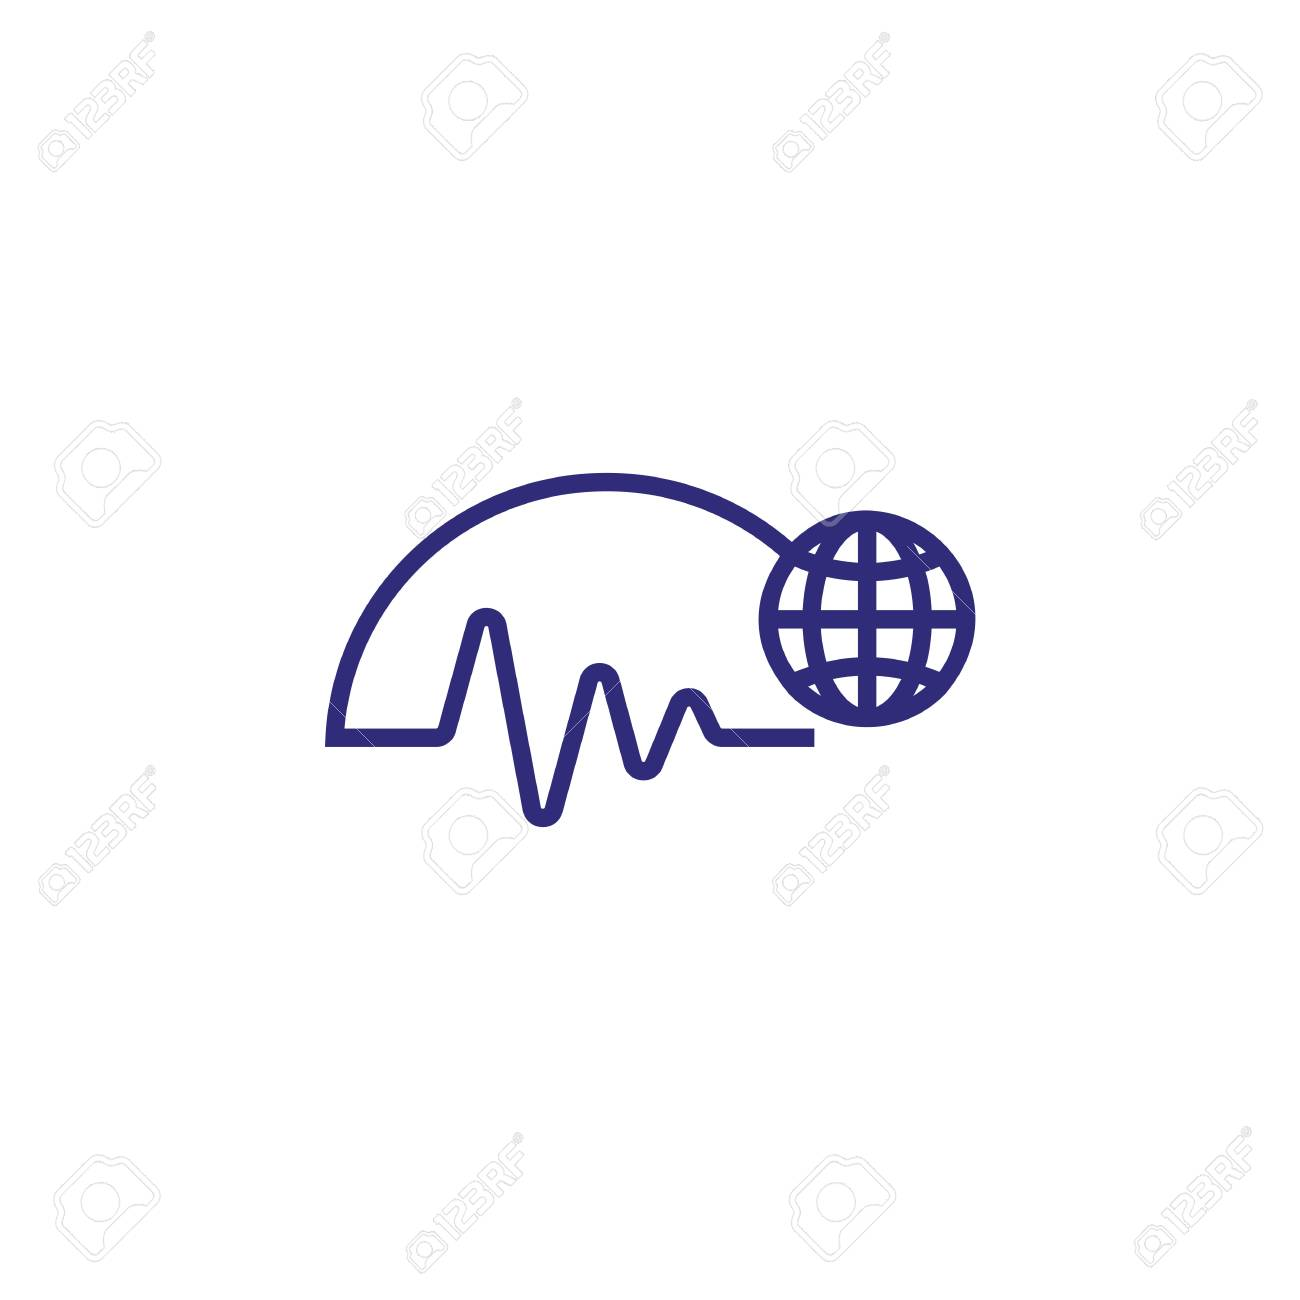 hight resolution of worldwide trends line icon diagram world globe business analytics concept can